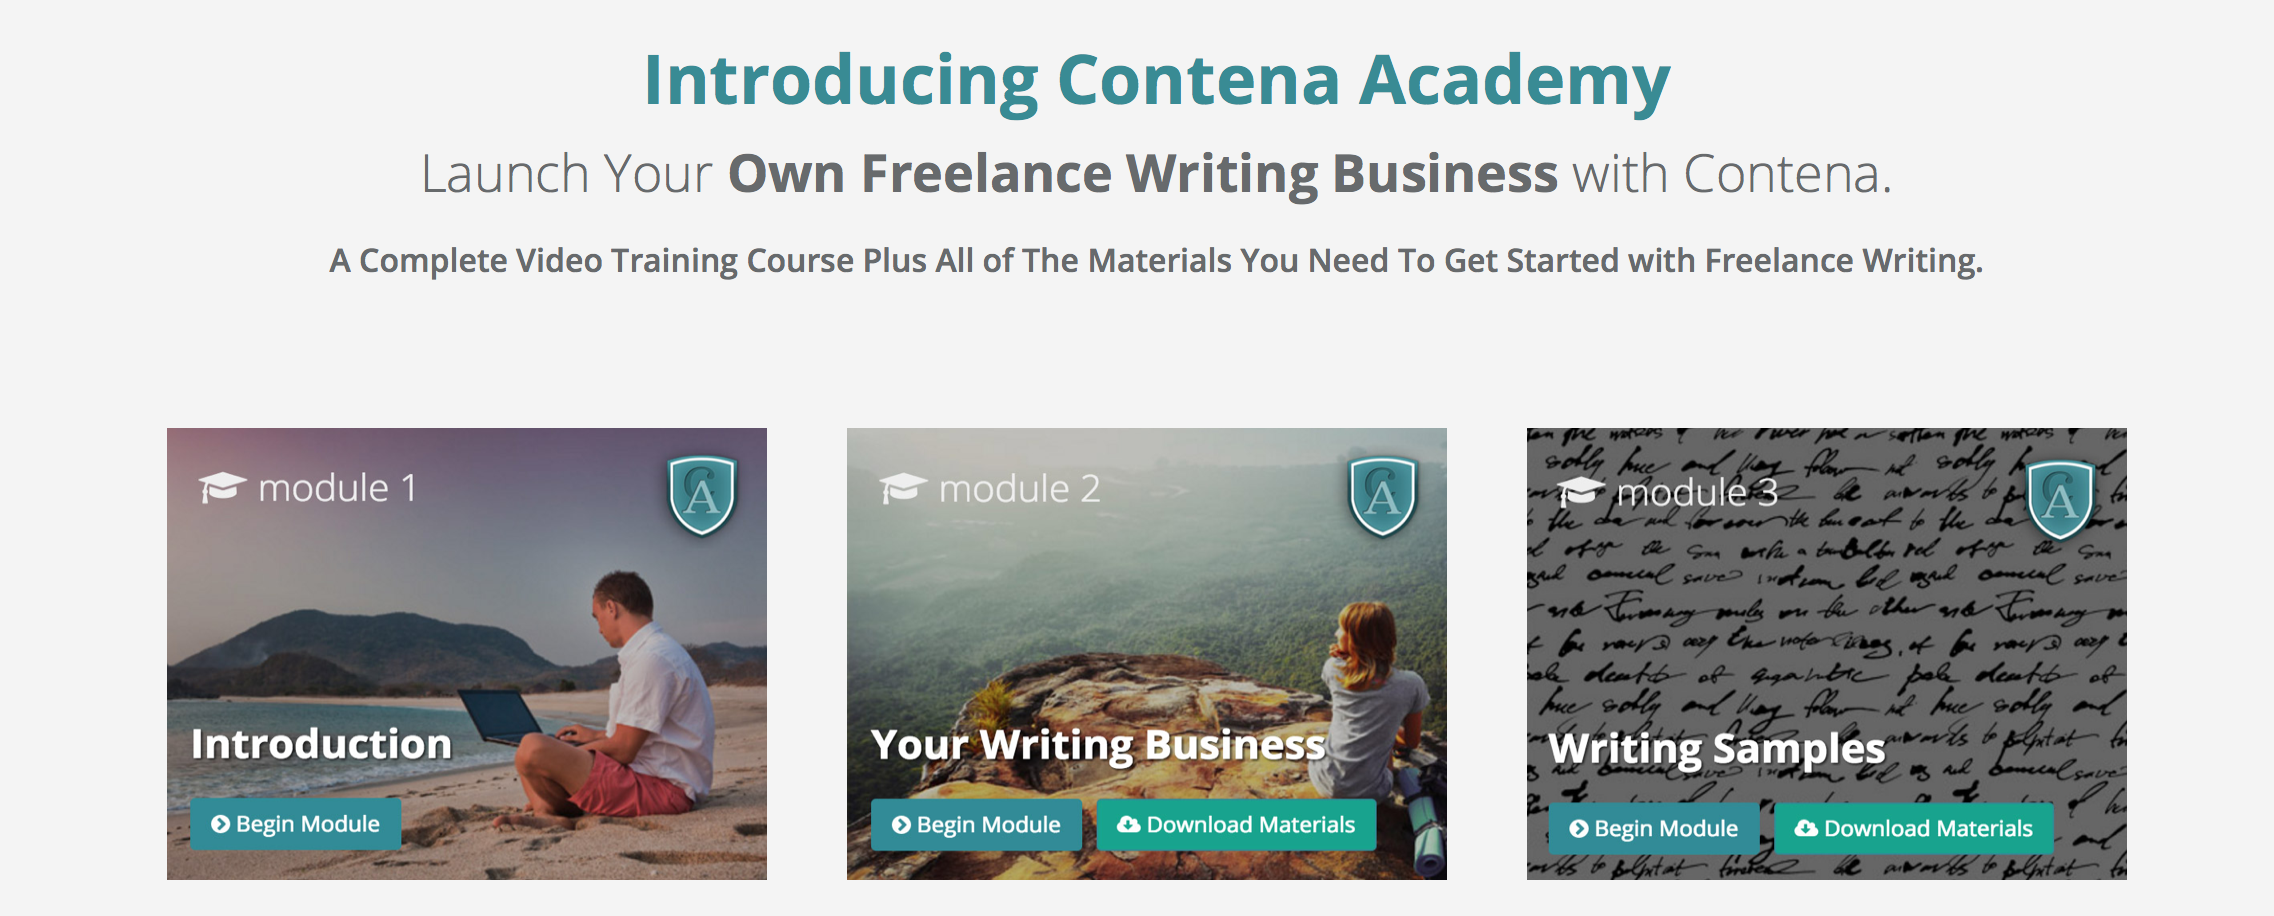 contena reviews, contena writing, contena free, contena legit, contena freelance writing reviews, learn to become a freelance writer, how to become a freelance writer